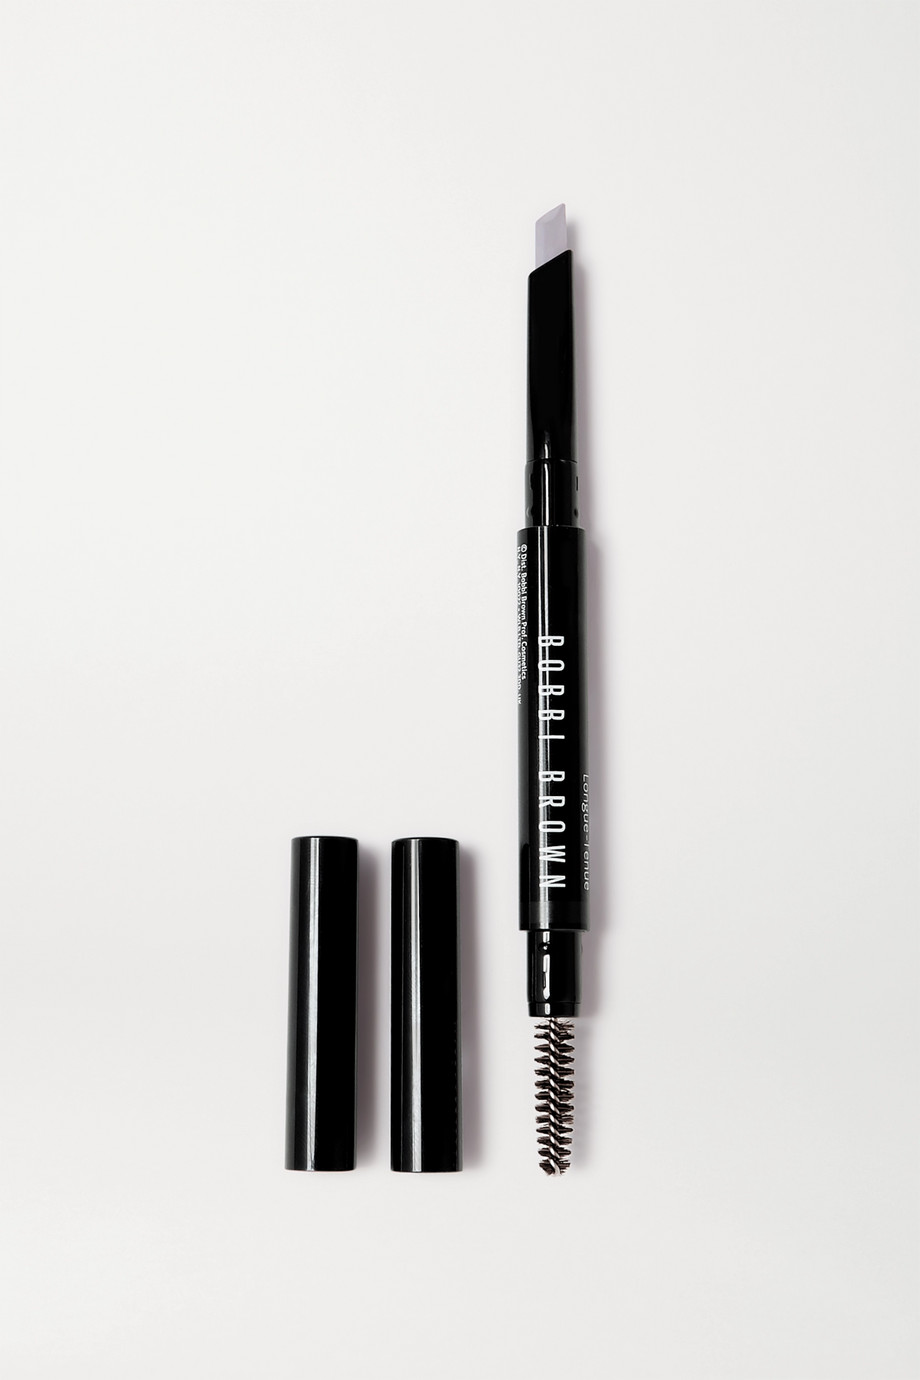 Bobbi Brown Perfectly Defined Long-Wear Brow Pencil - Slate